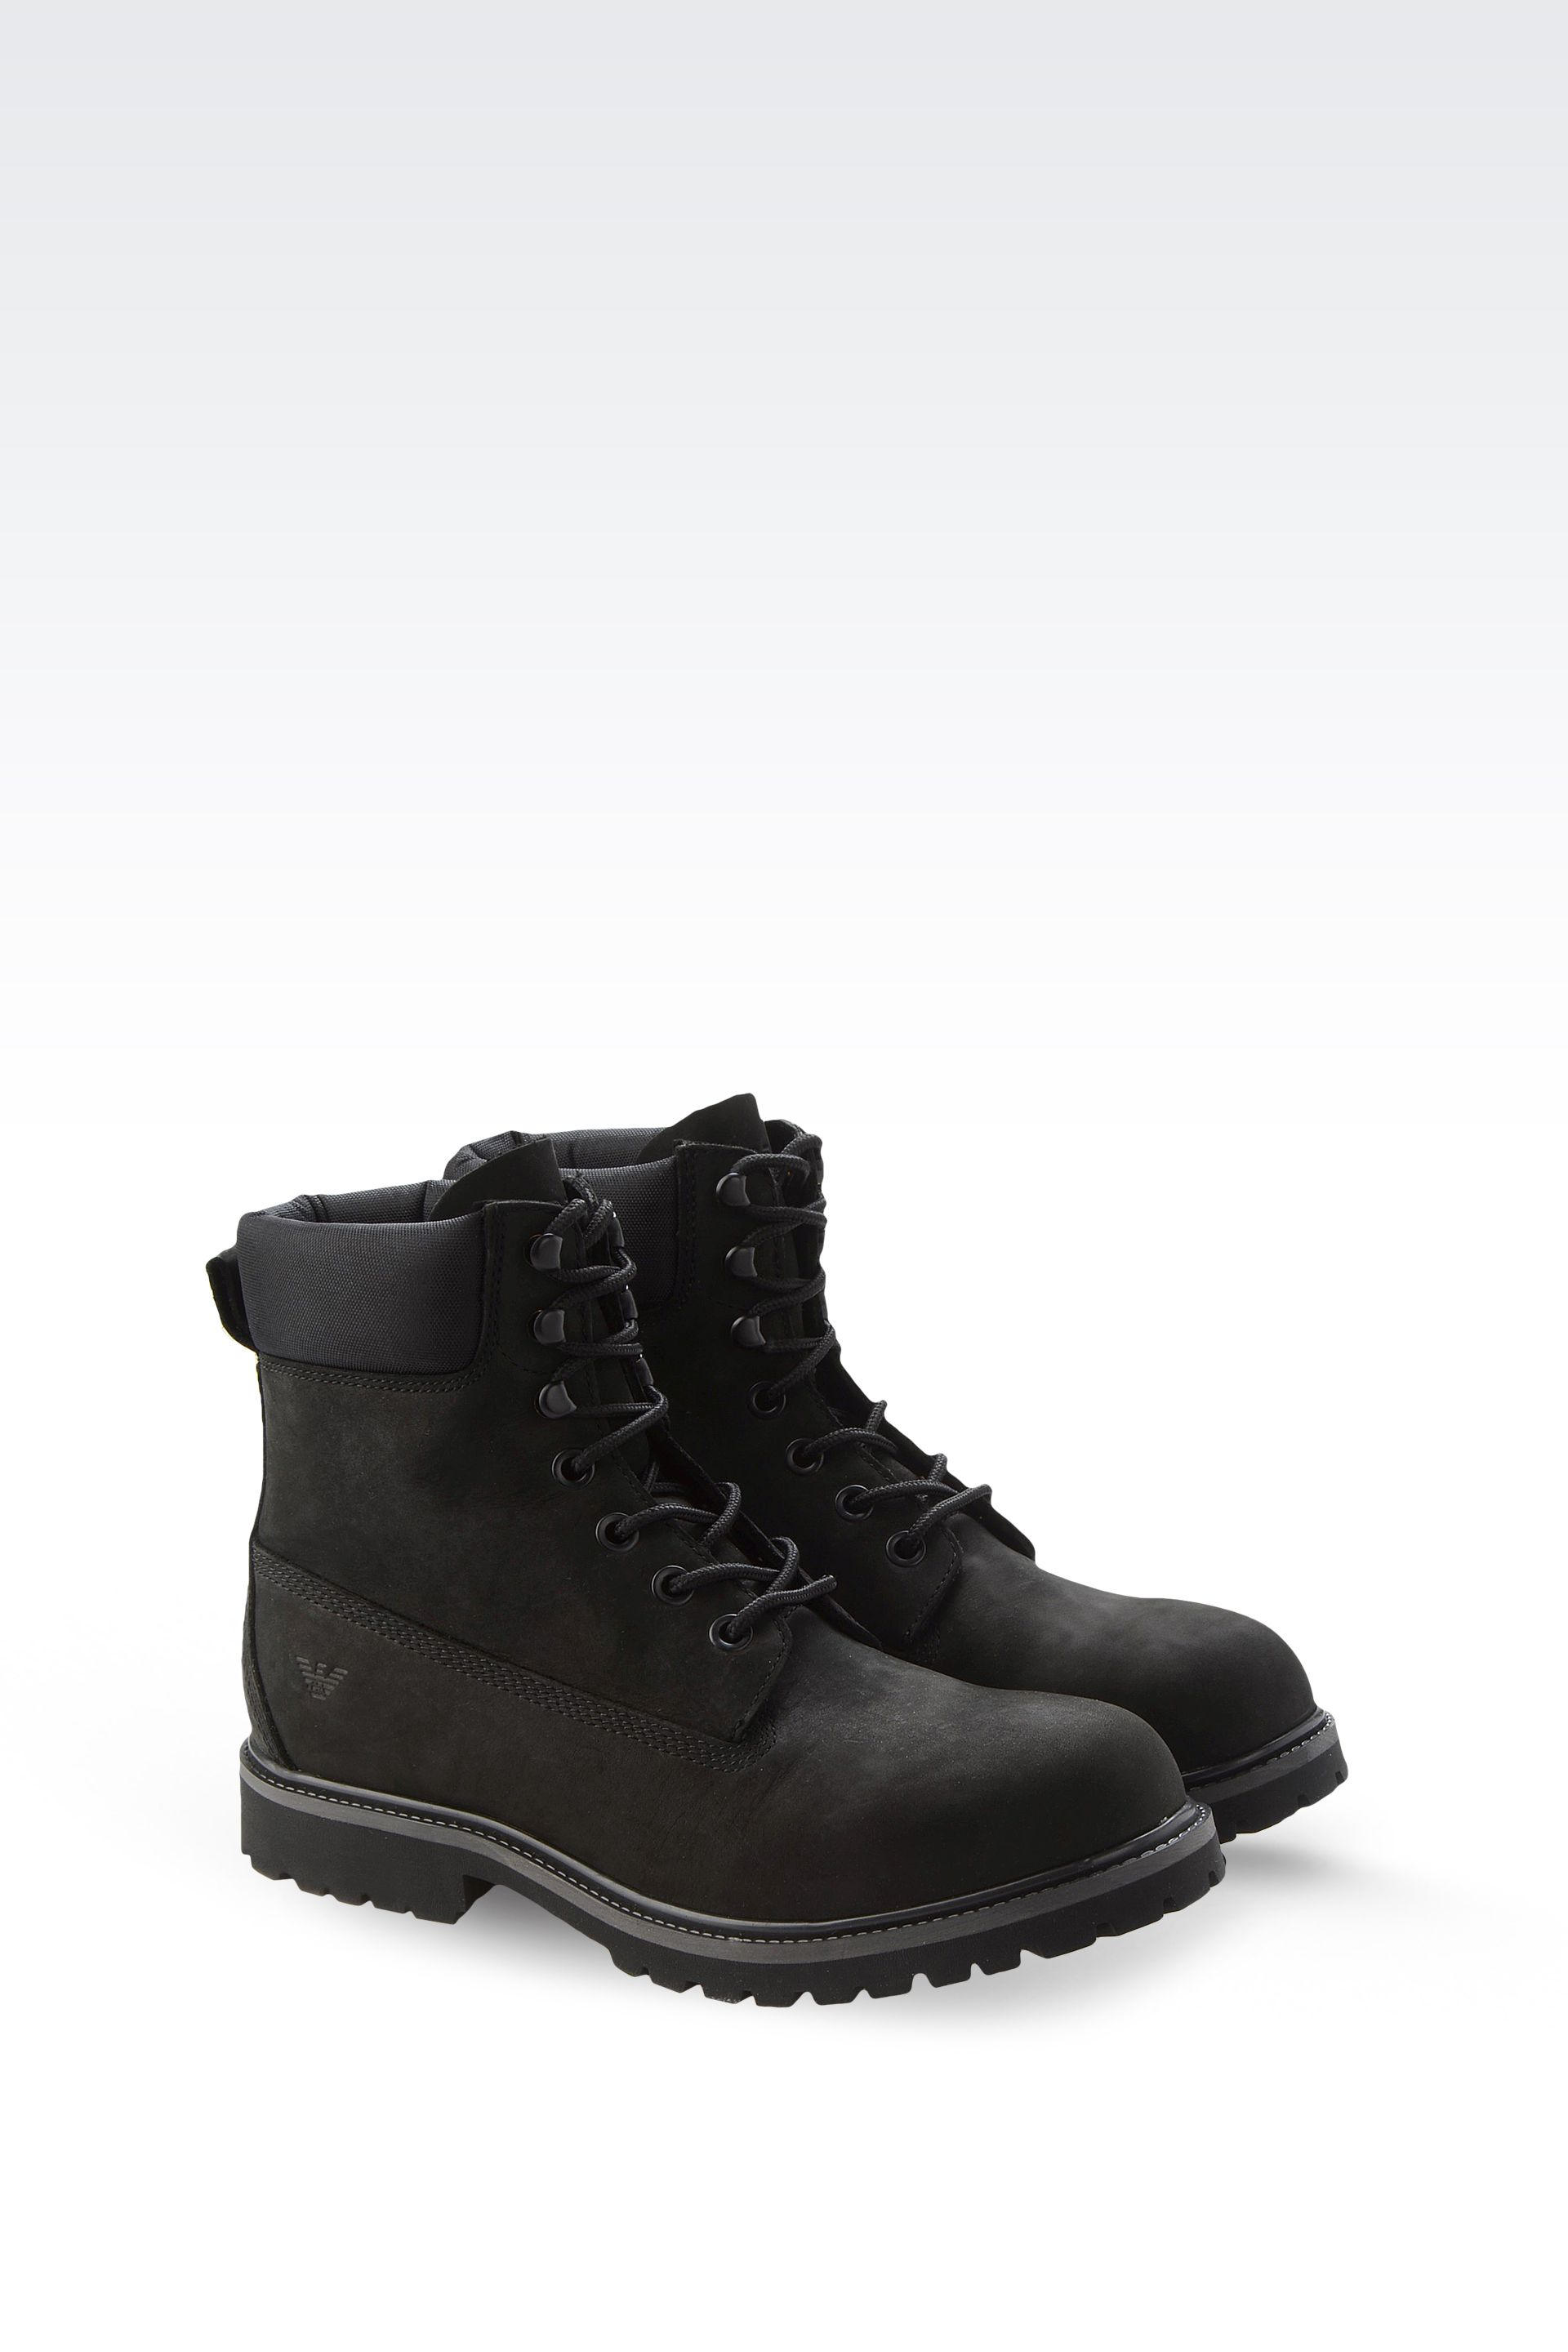 Armani jeans Combat Boots in Black for Men | Lyst